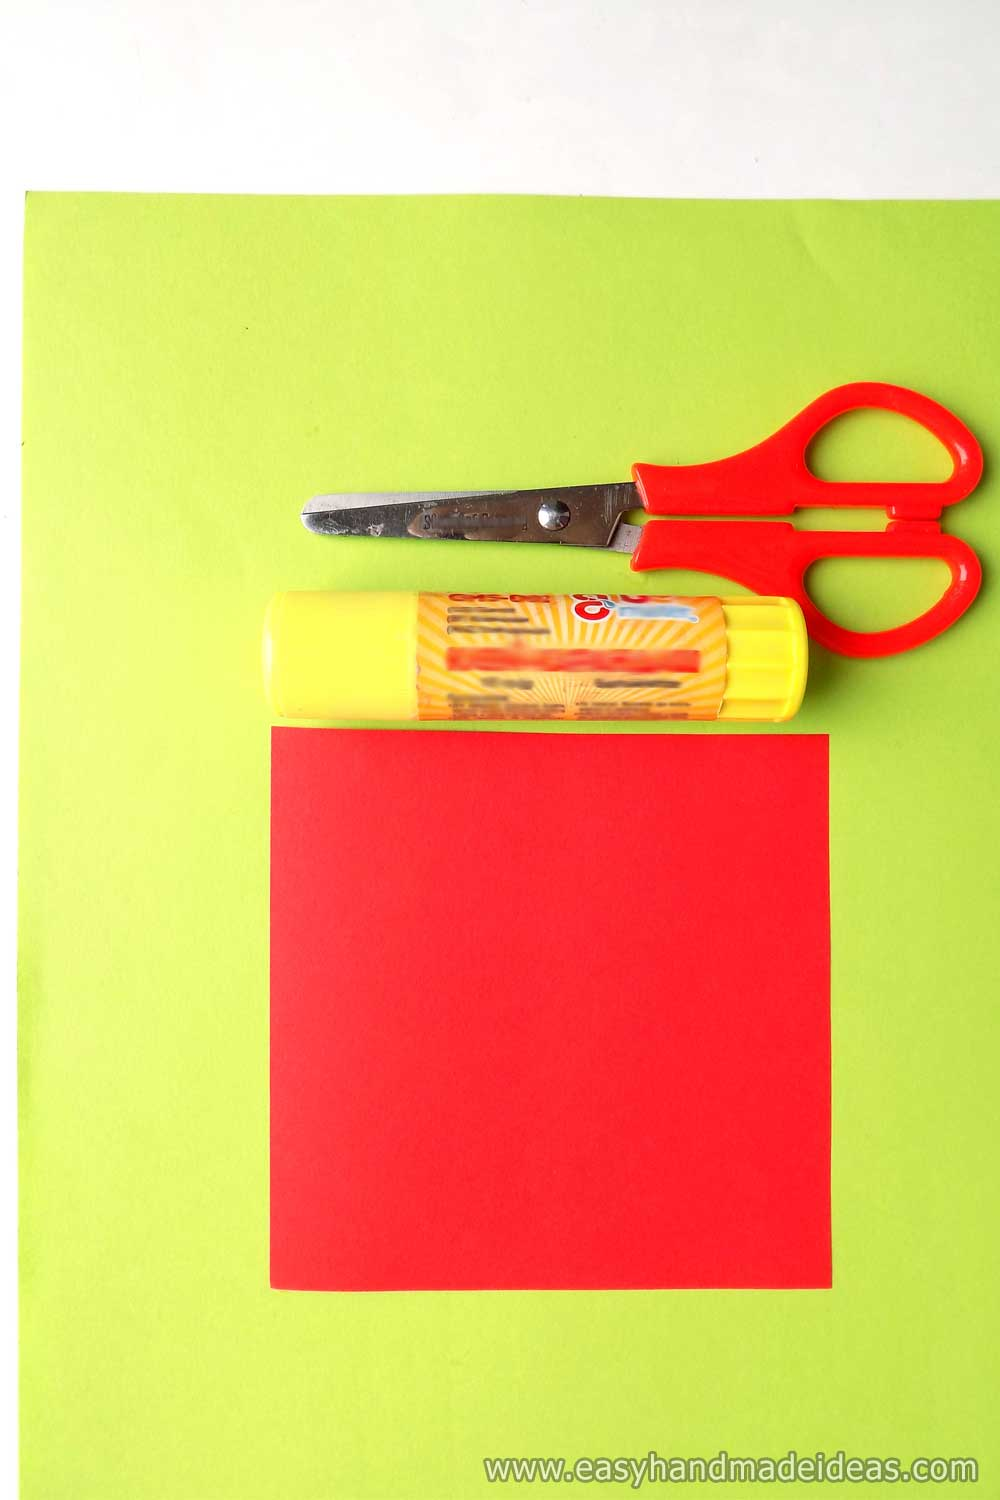 Tools and Materials for Paper Tulip